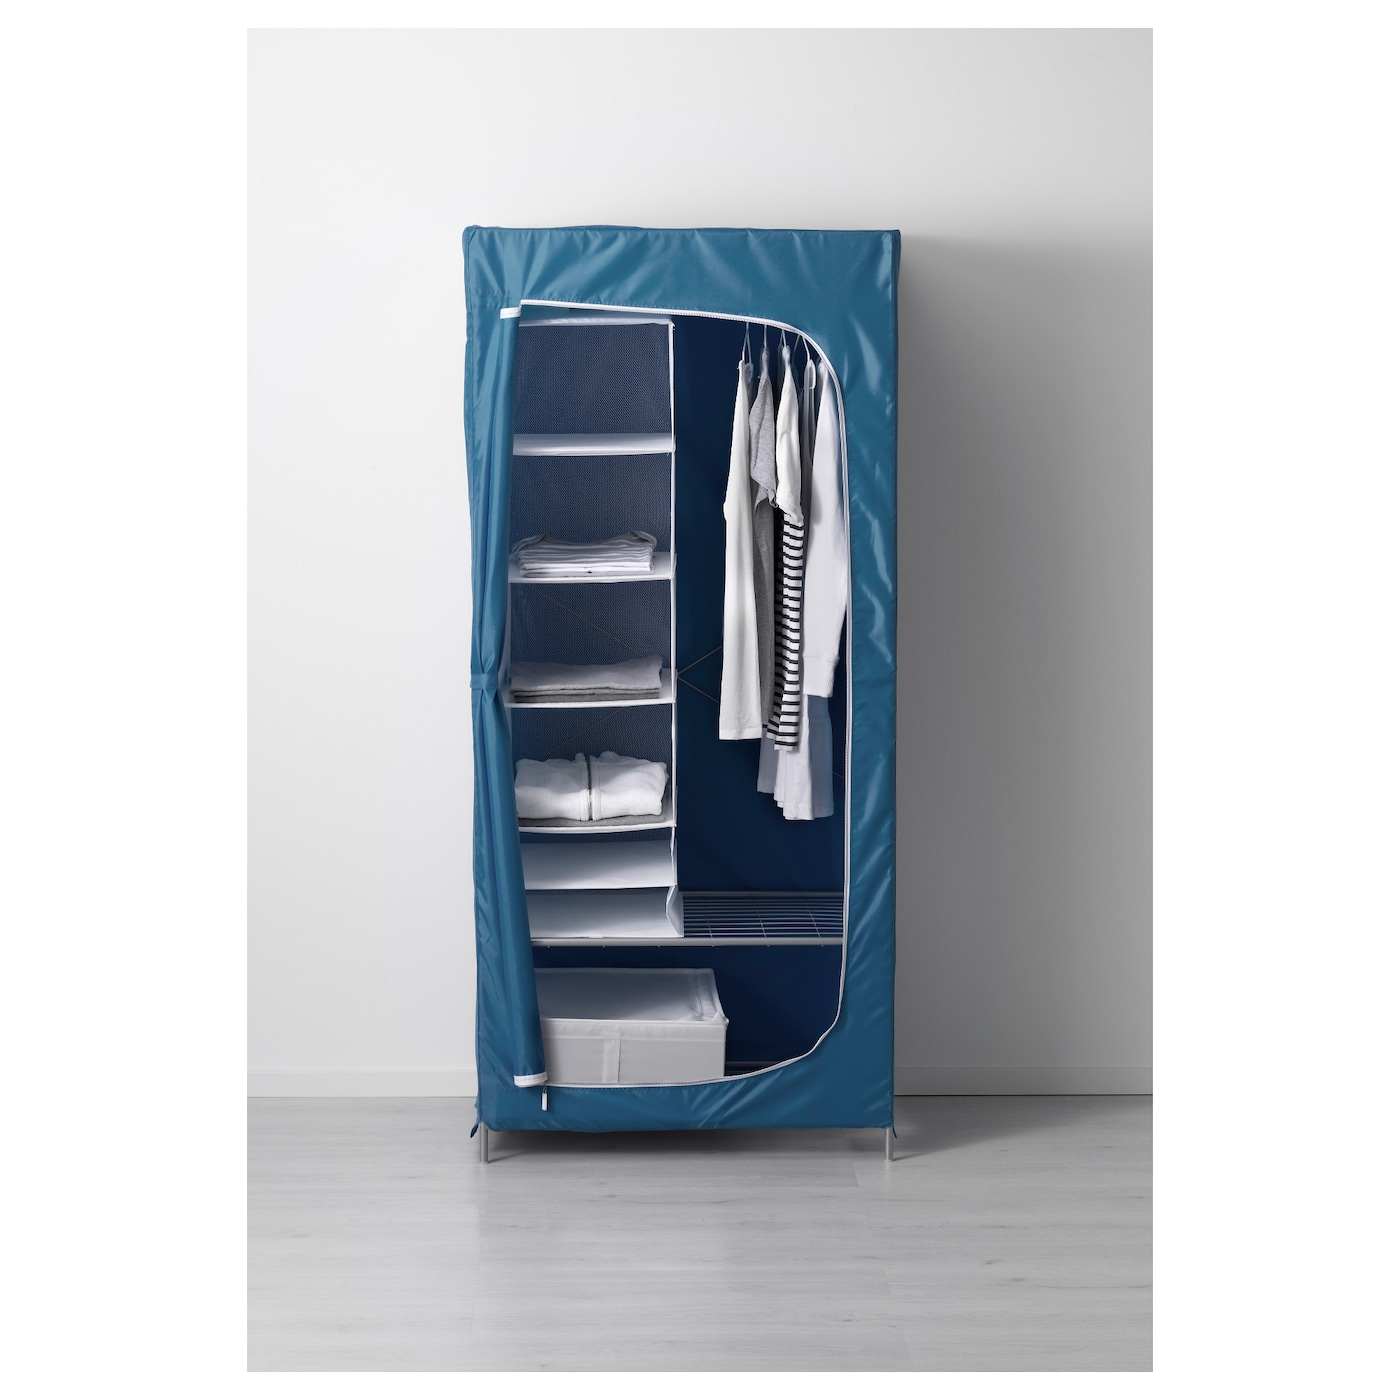 breim armoire penderie bleu 80x55x180 cm ikea. Black Bedroom Furniture Sets. Home Design Ideas